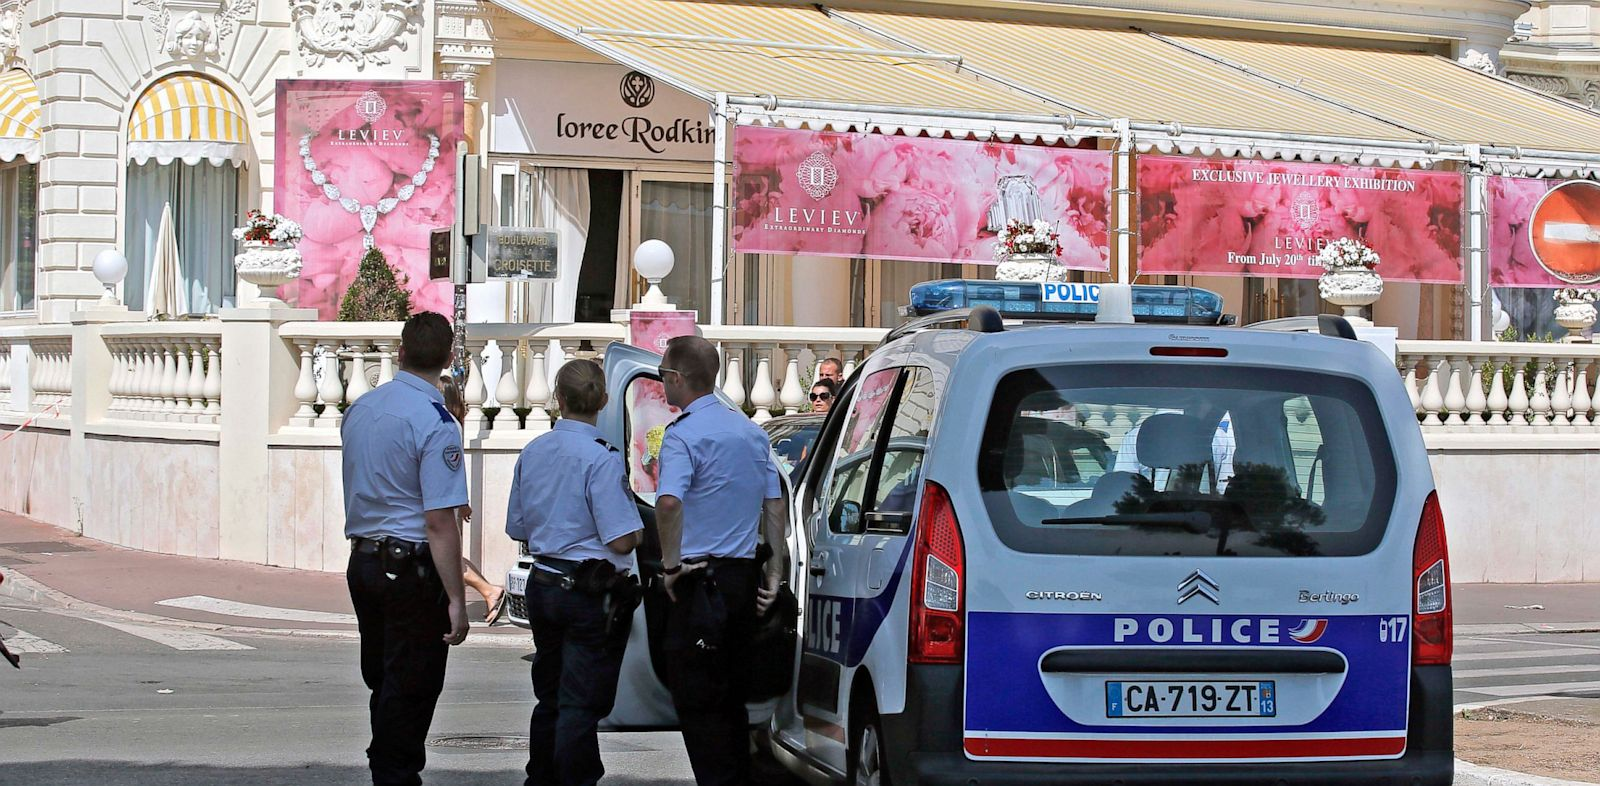 PHOTO: Police stand outside the Carlton hotel, in Cannes, southern France